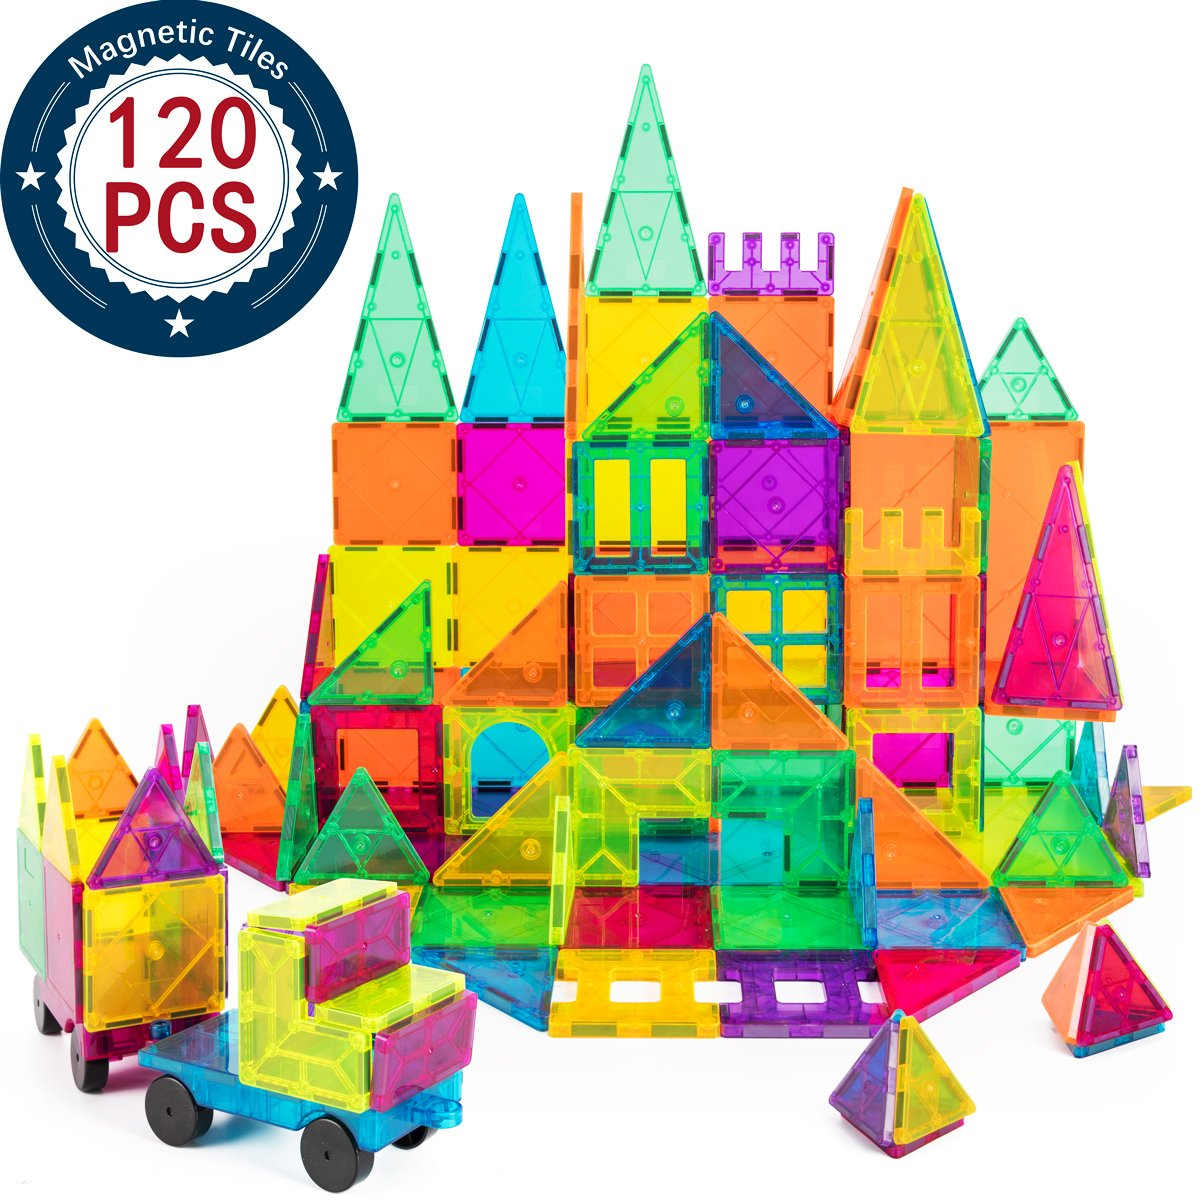 cossy Kids Magnet Toys Magnet Building Tiles, 120 Pcs 3D Magnetic Building Blocks Set, Educational Toys for Kids Children by cossy